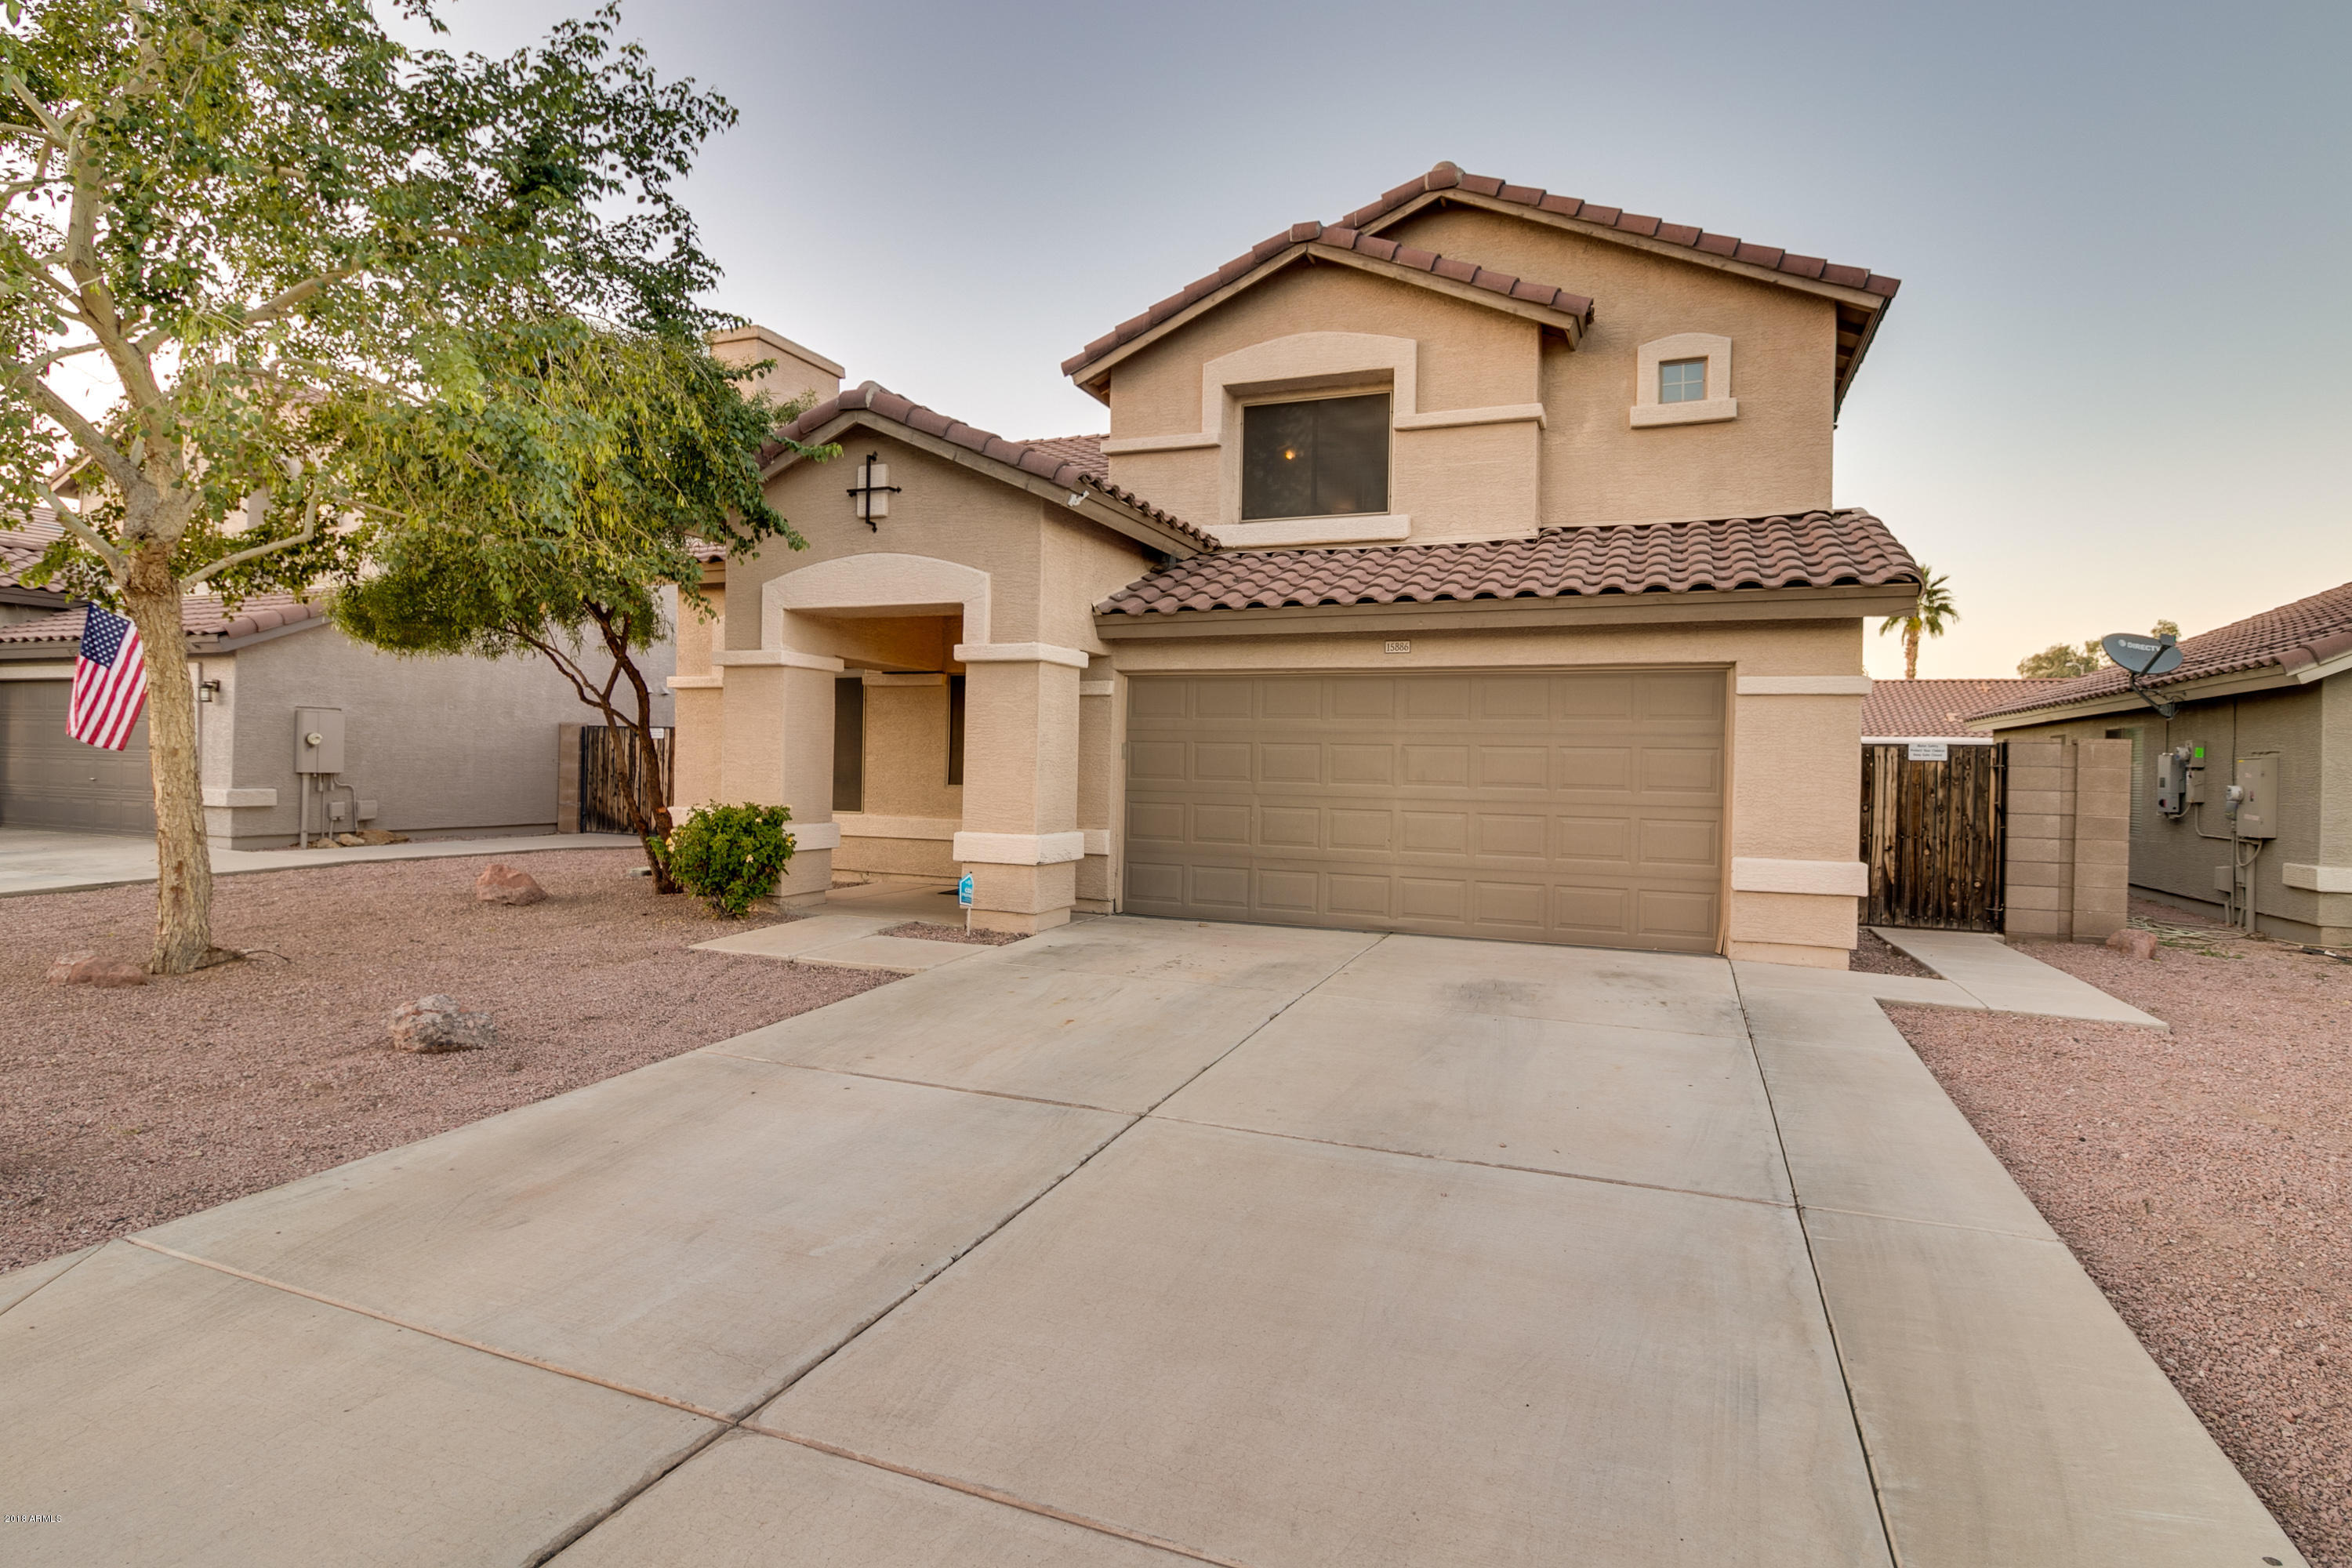 Photo of 15886 W STATLER Street, Surprise, AZ 85374